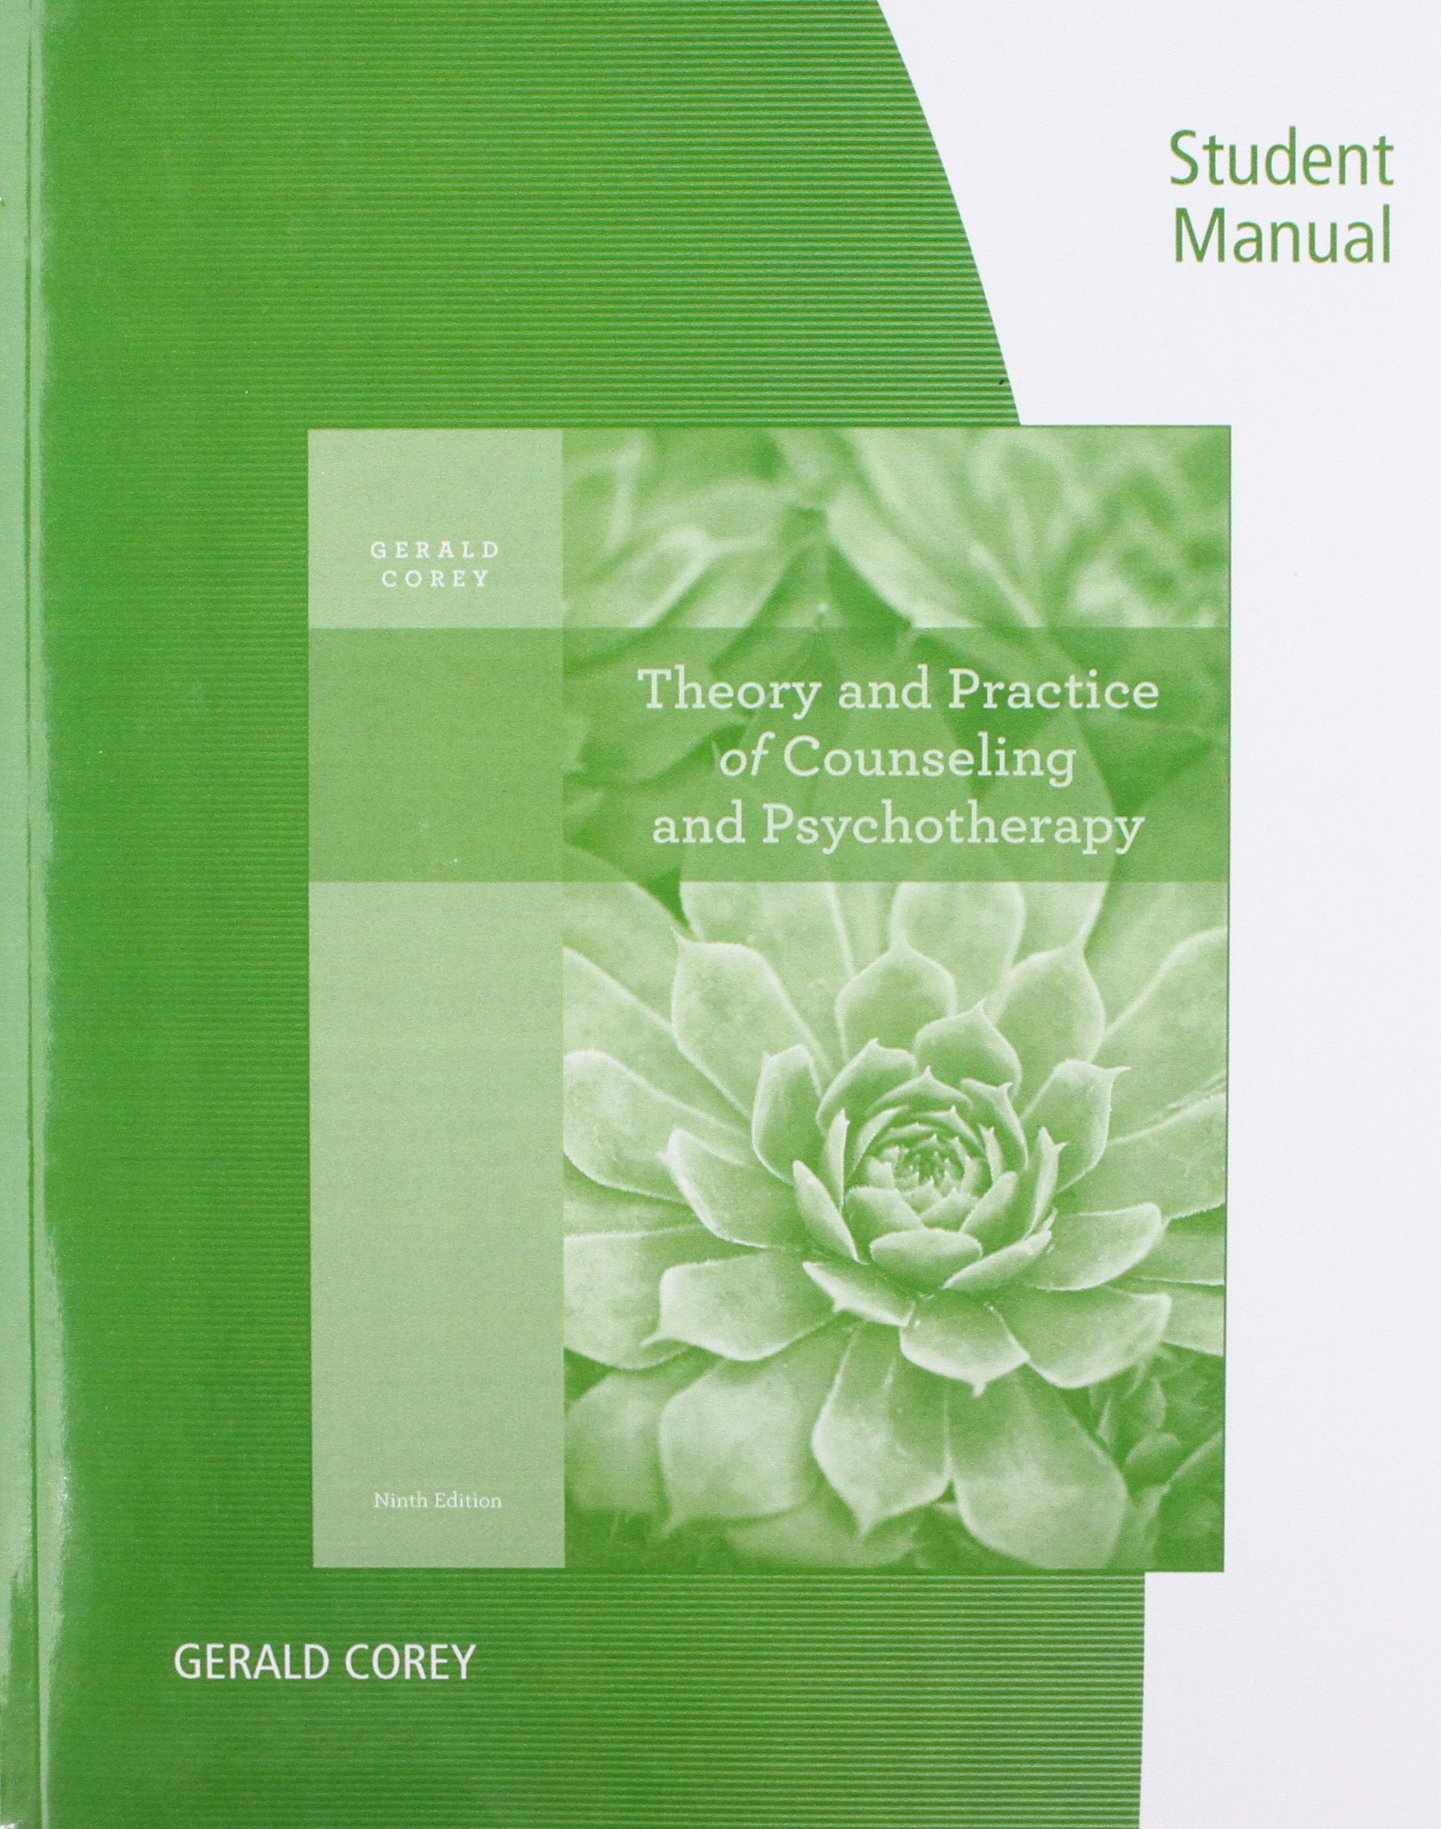 Theory & Practice of Counselling & Psychotherapy: Gerald Corey:  9781133309352: Amazon.com: Books